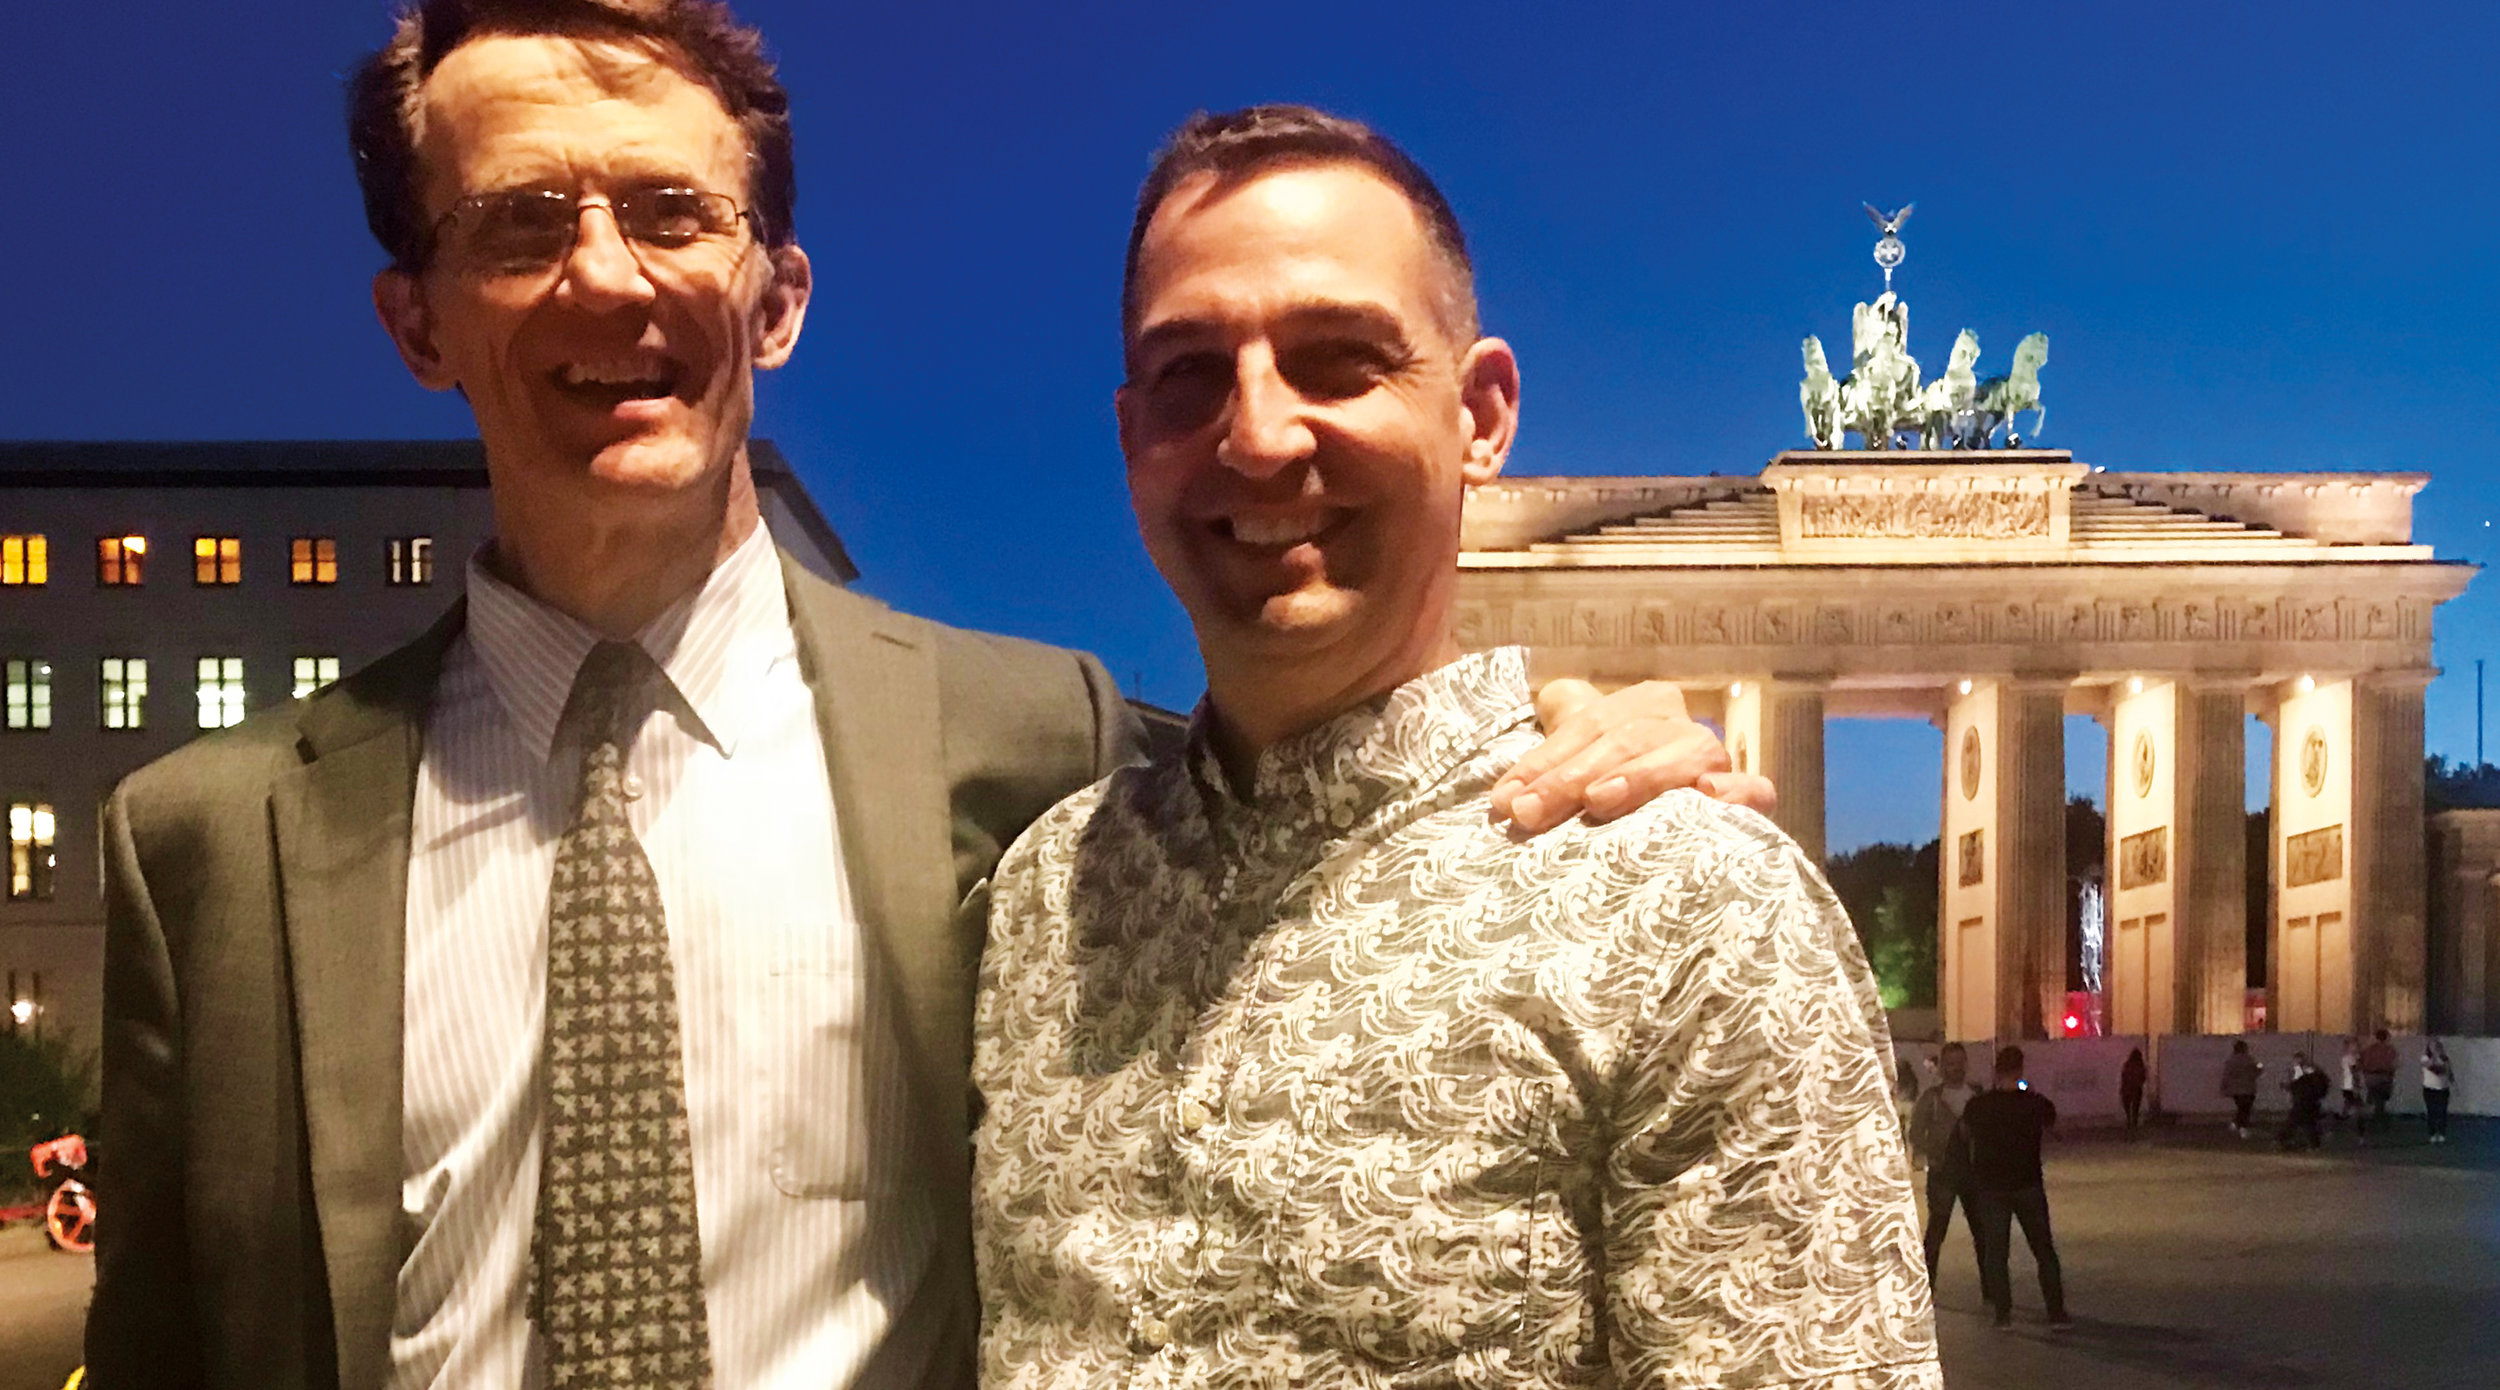 Bill Martin '79 (l.) hosted Dave Stevenson '79 during a recent trip to Berlin, Germany.